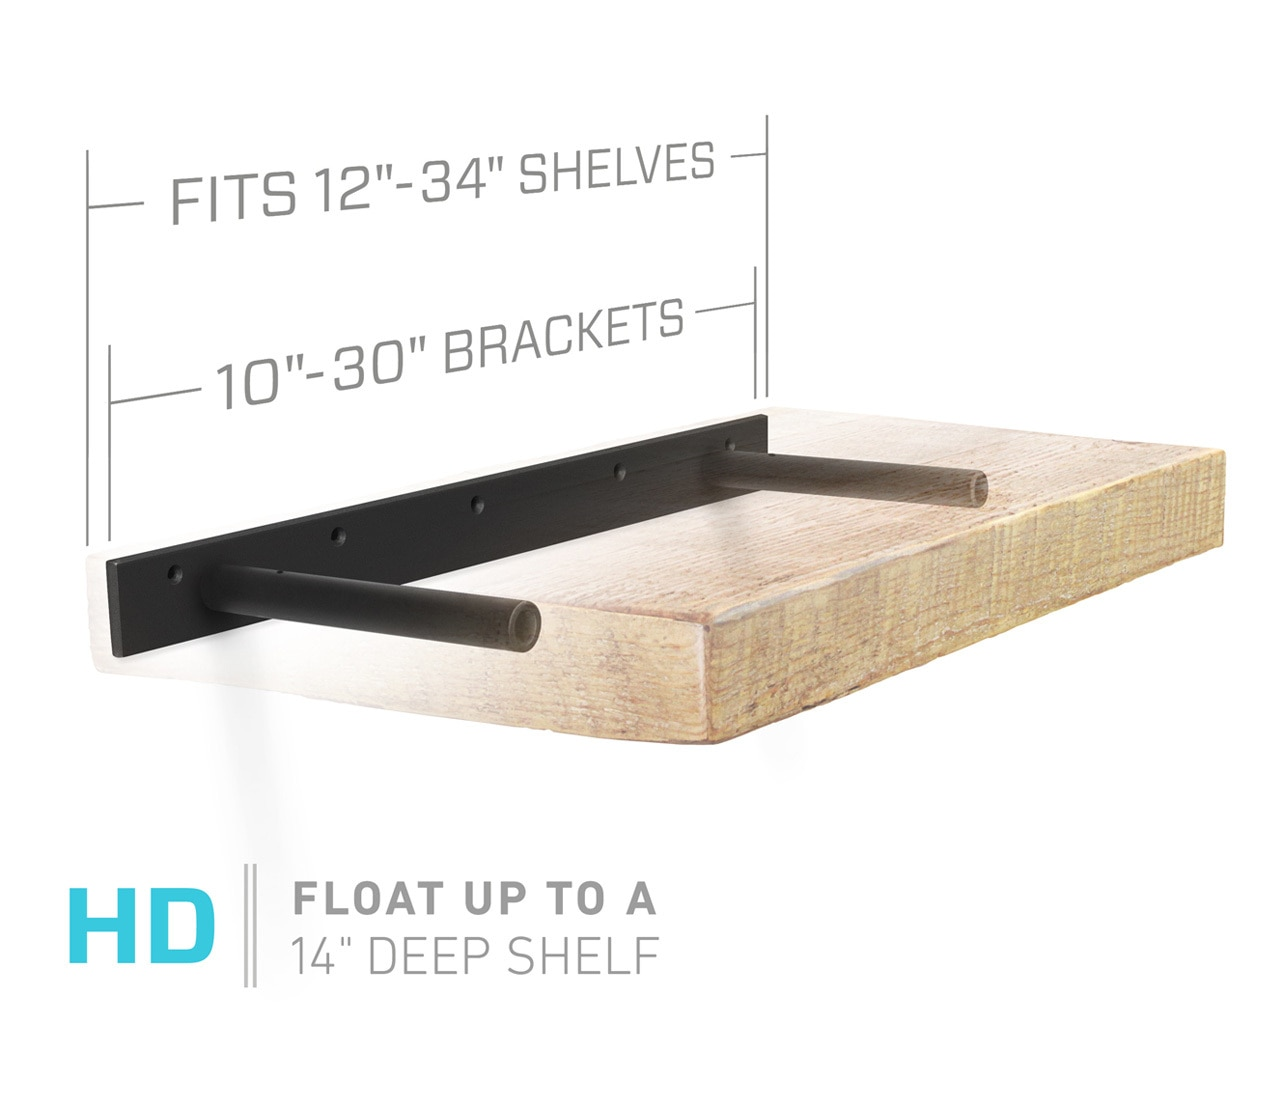 floating shelf bracket fits inch shelves heavy duty supports our two bar brackets float deep bookshelf spacing white paper shelving rack kitchen vintage wood corner how normal